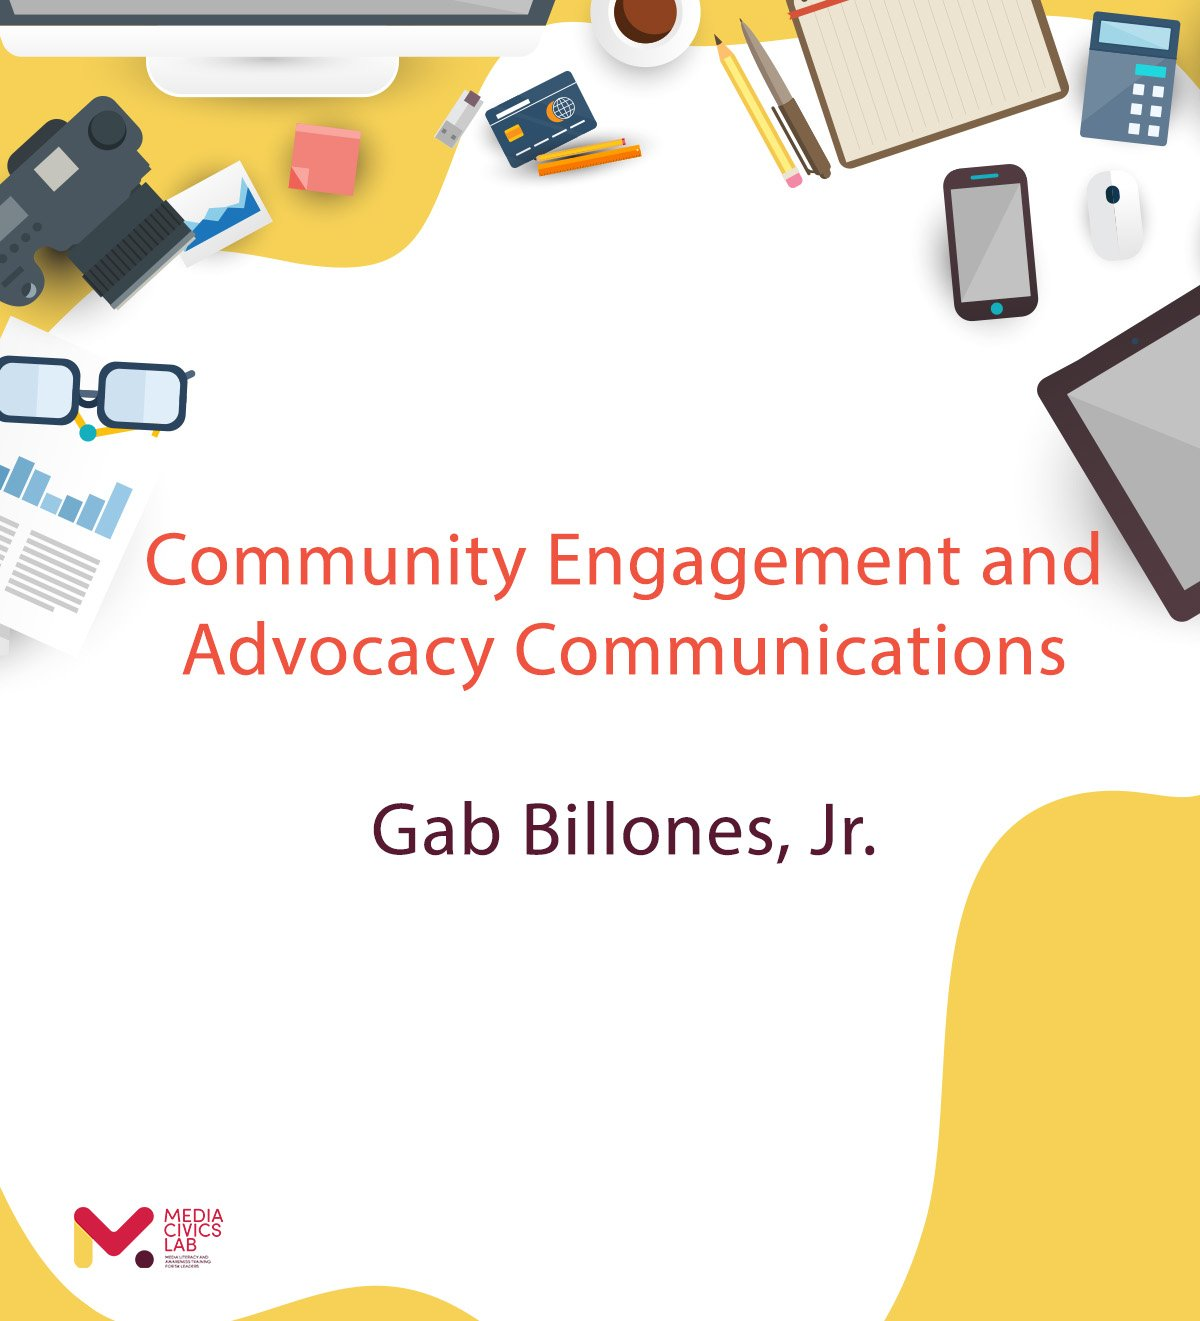 Community Engagement and Advocacy Communications – Gab billones